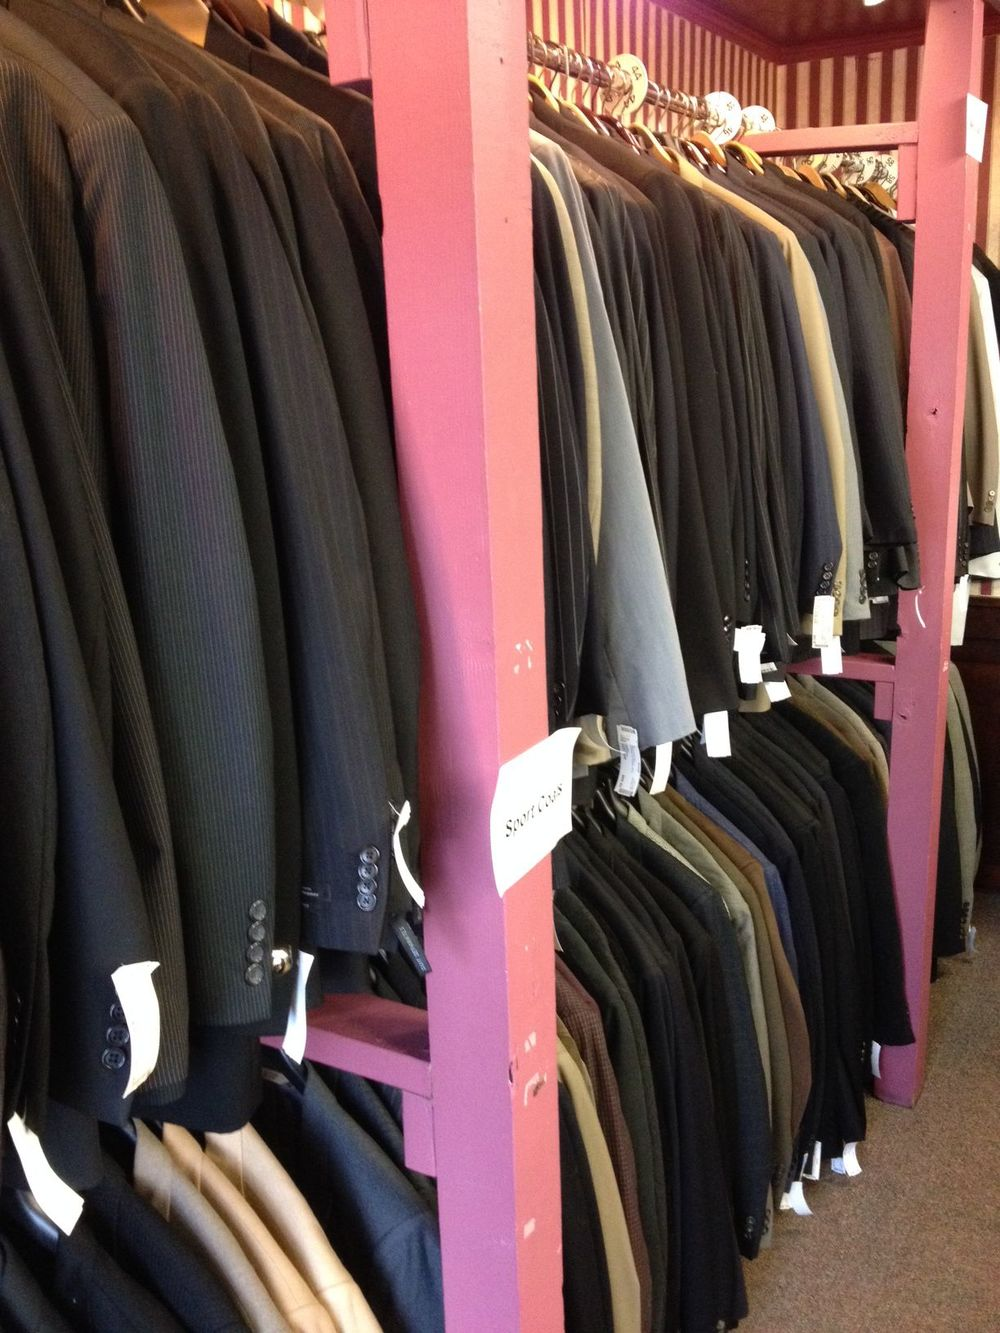 We have a large selection of suits & sport coats ranging from  $30.00 to $100.00